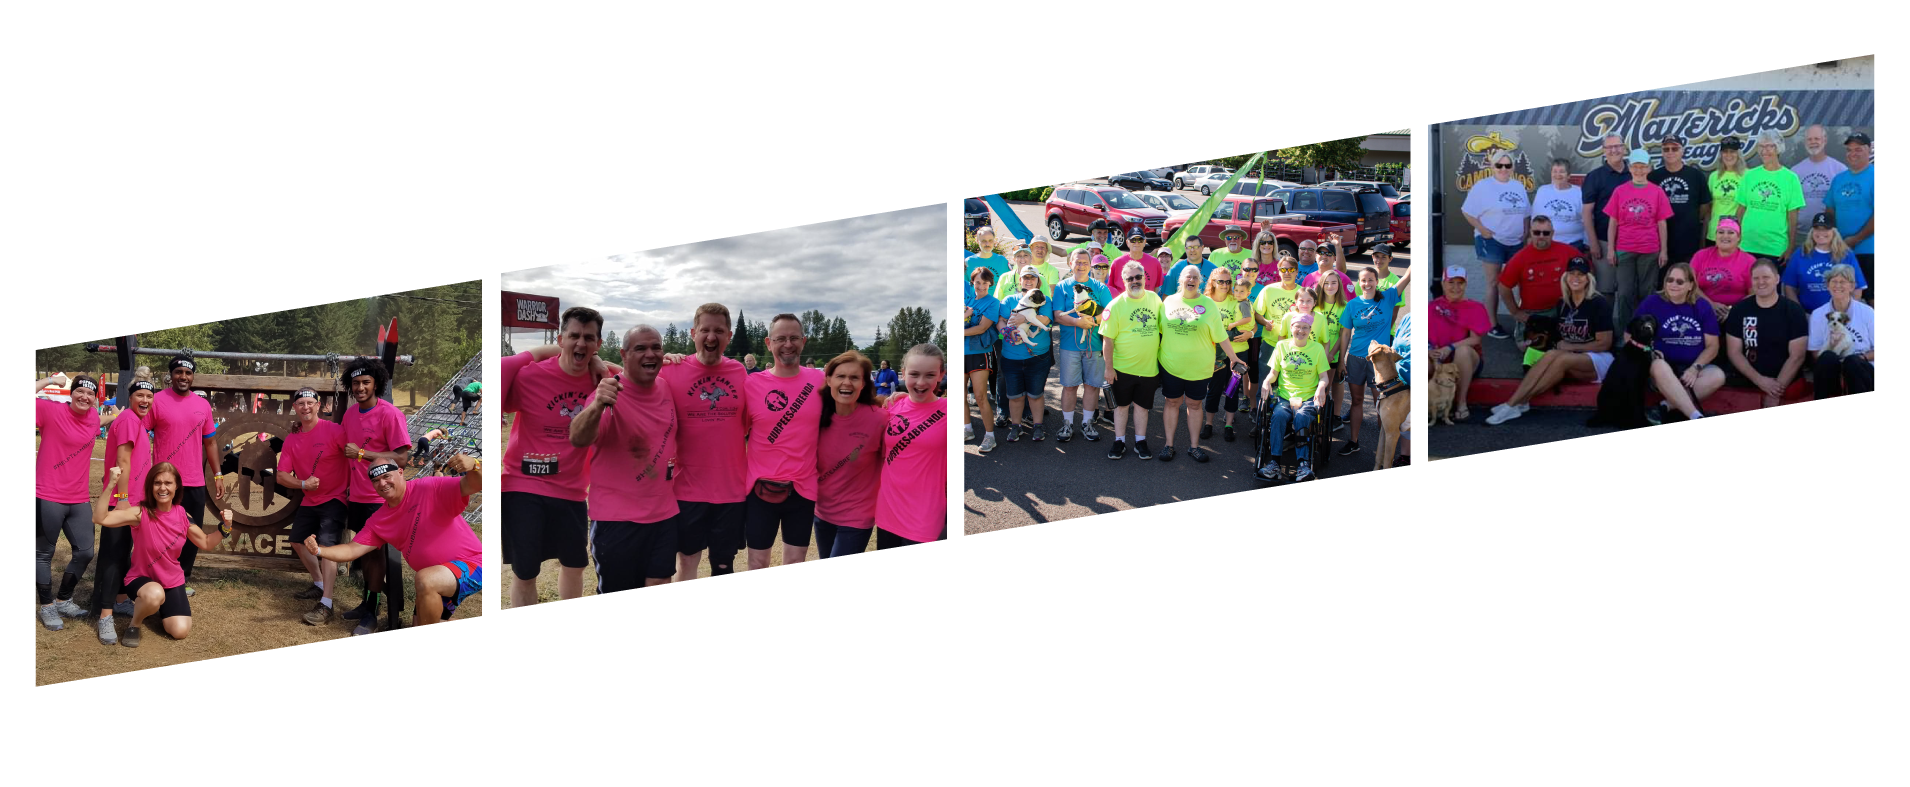 growth of the movement four images slanted upward showing people at the spartan, warrior dash, and lovin' runs over the past few years